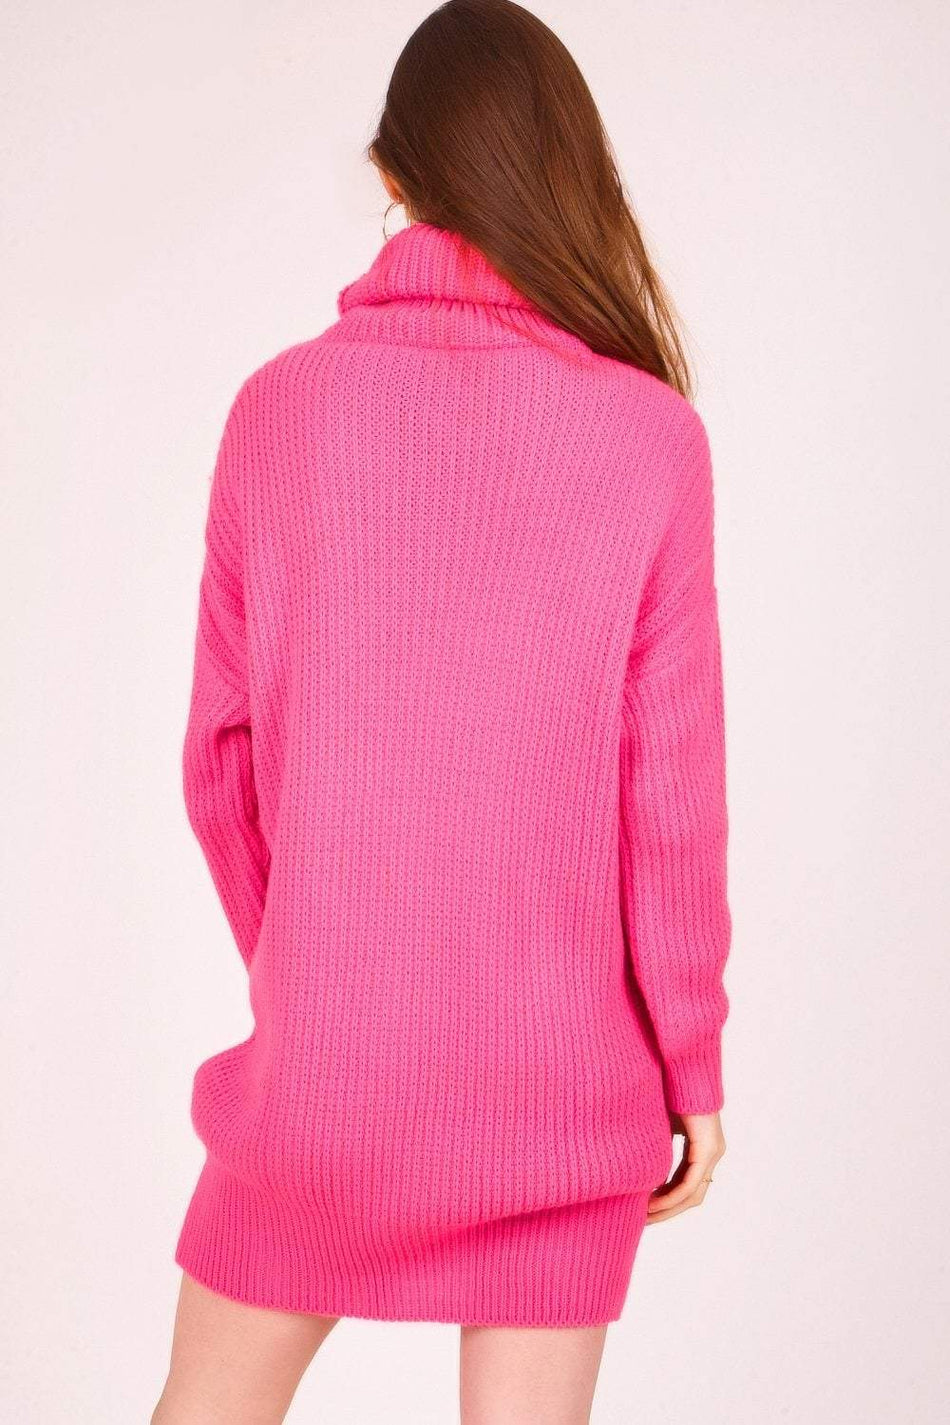 Neon Pink Oversized Jumper Dress - KATCH ME